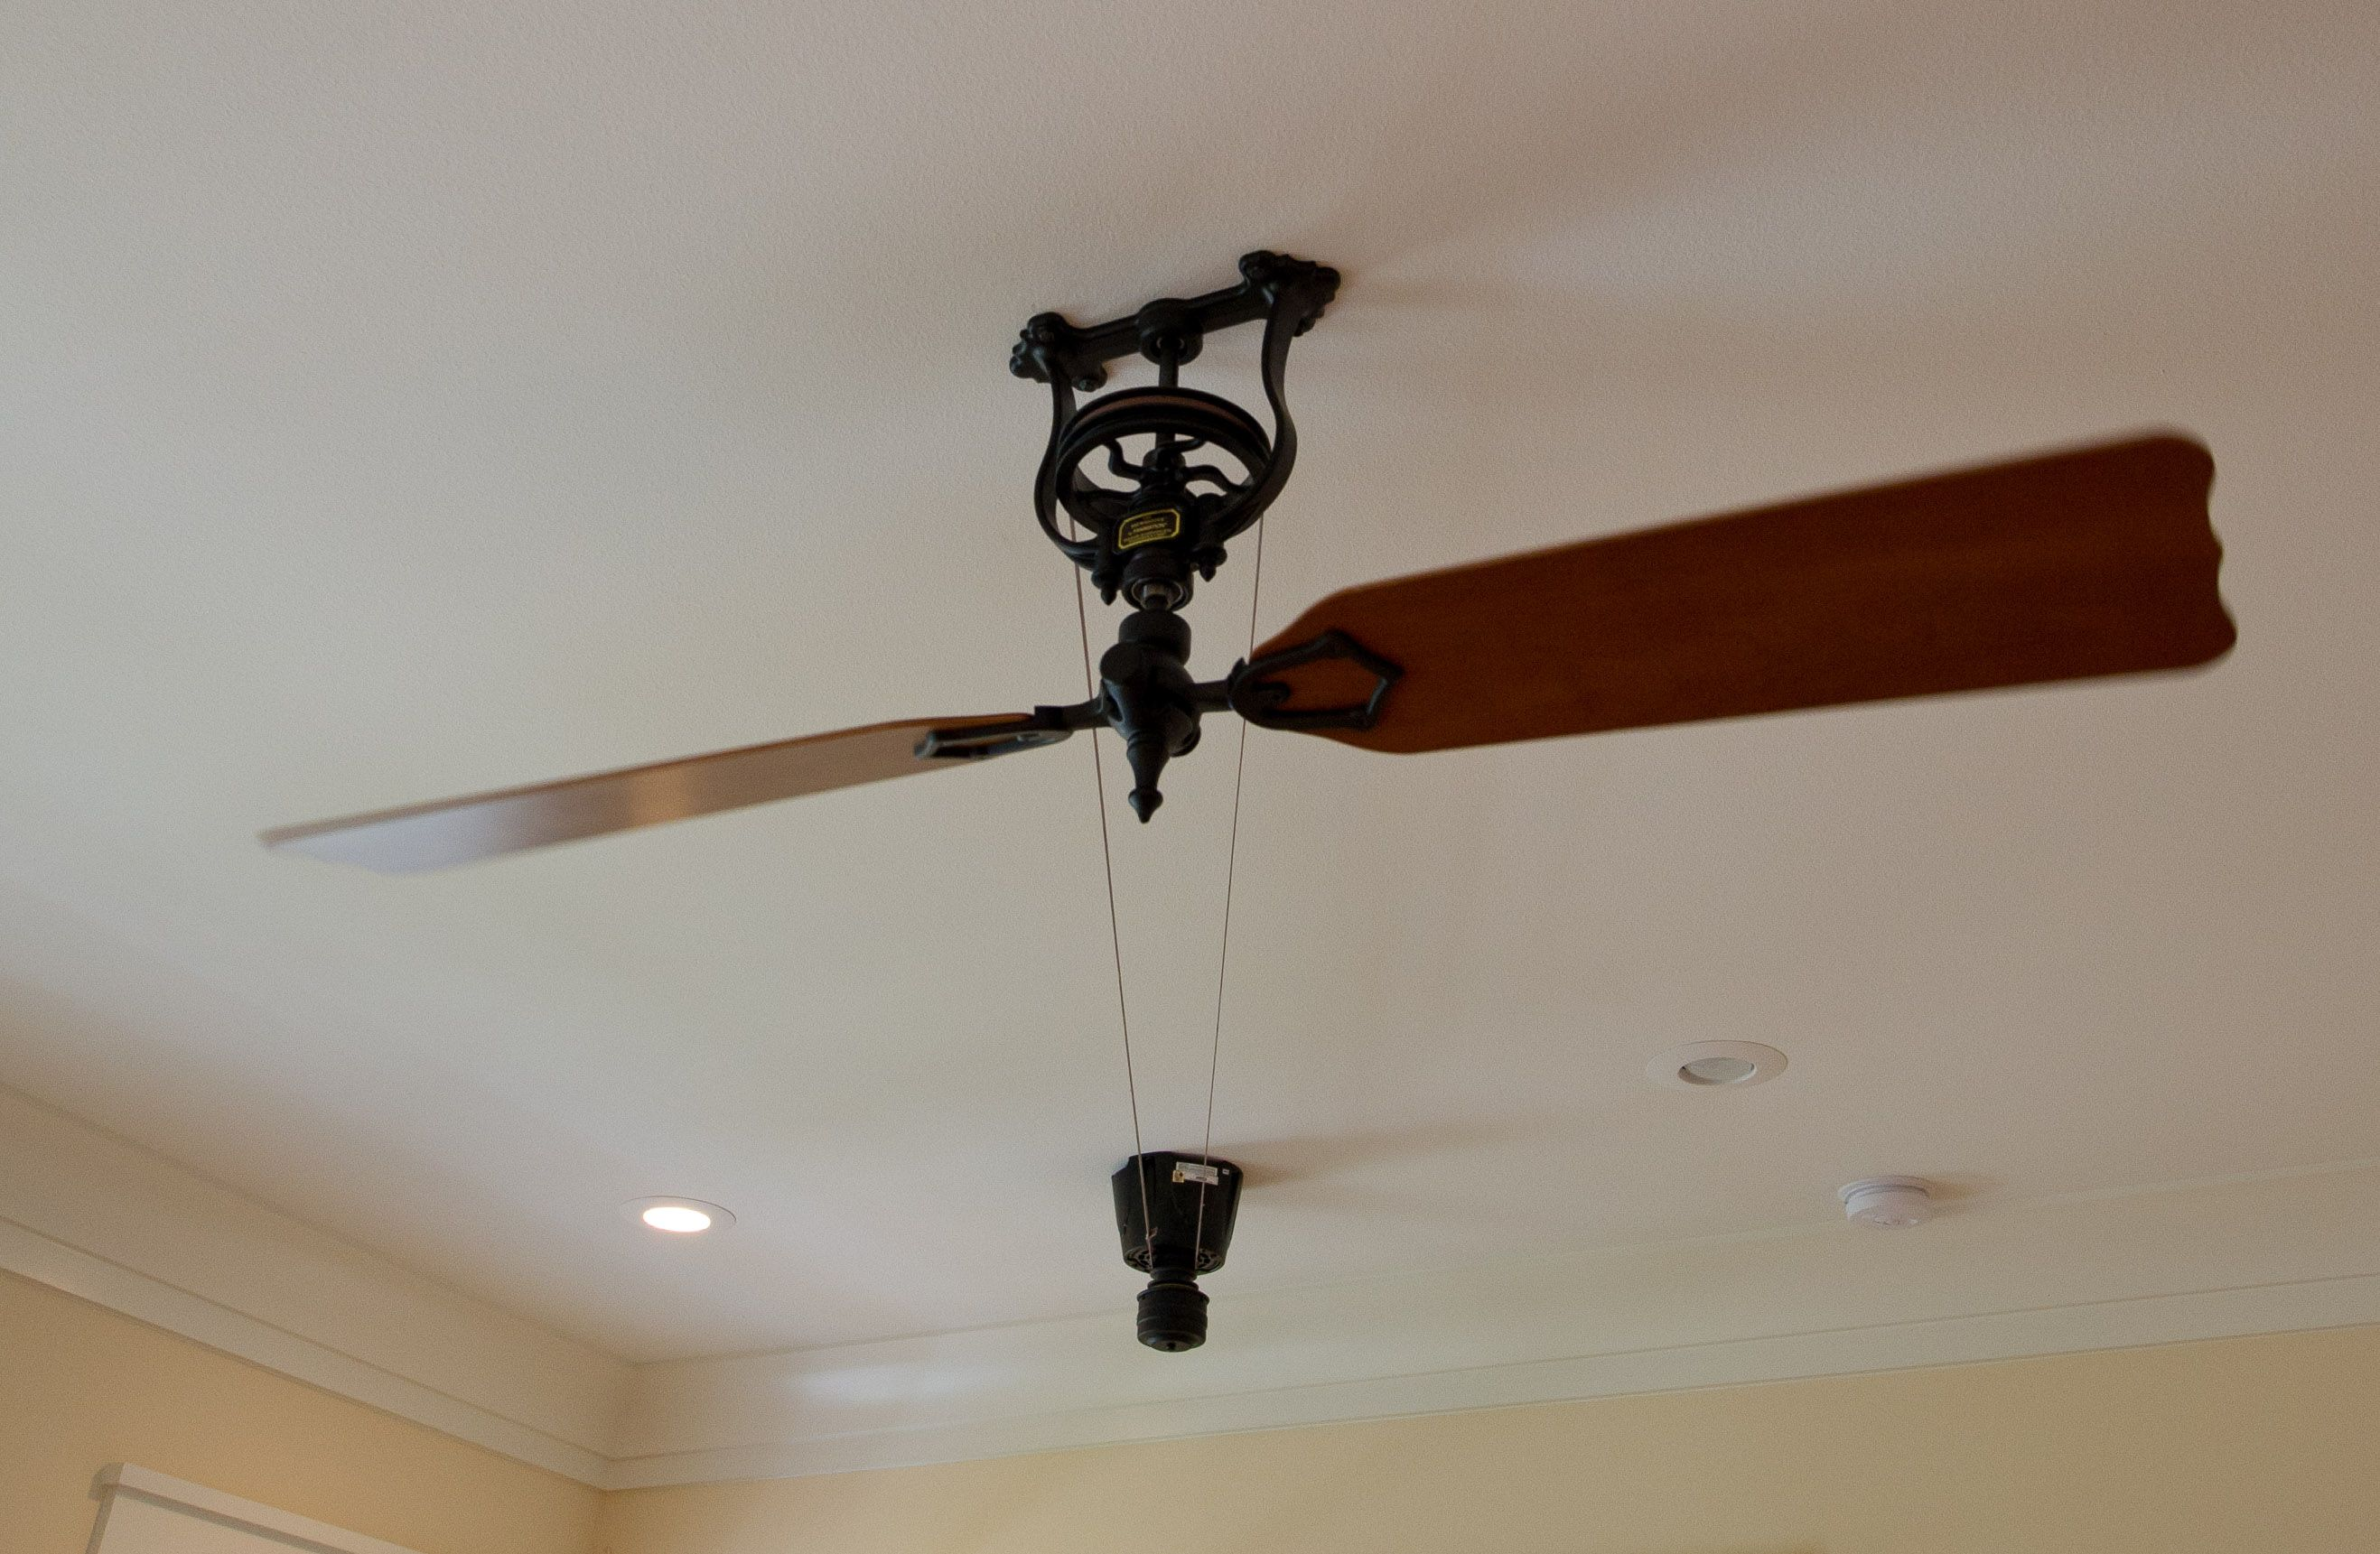 Pin By Tyson Construction On Lighting And Fans Ceiling Fan Fan Bulbs Ceiling